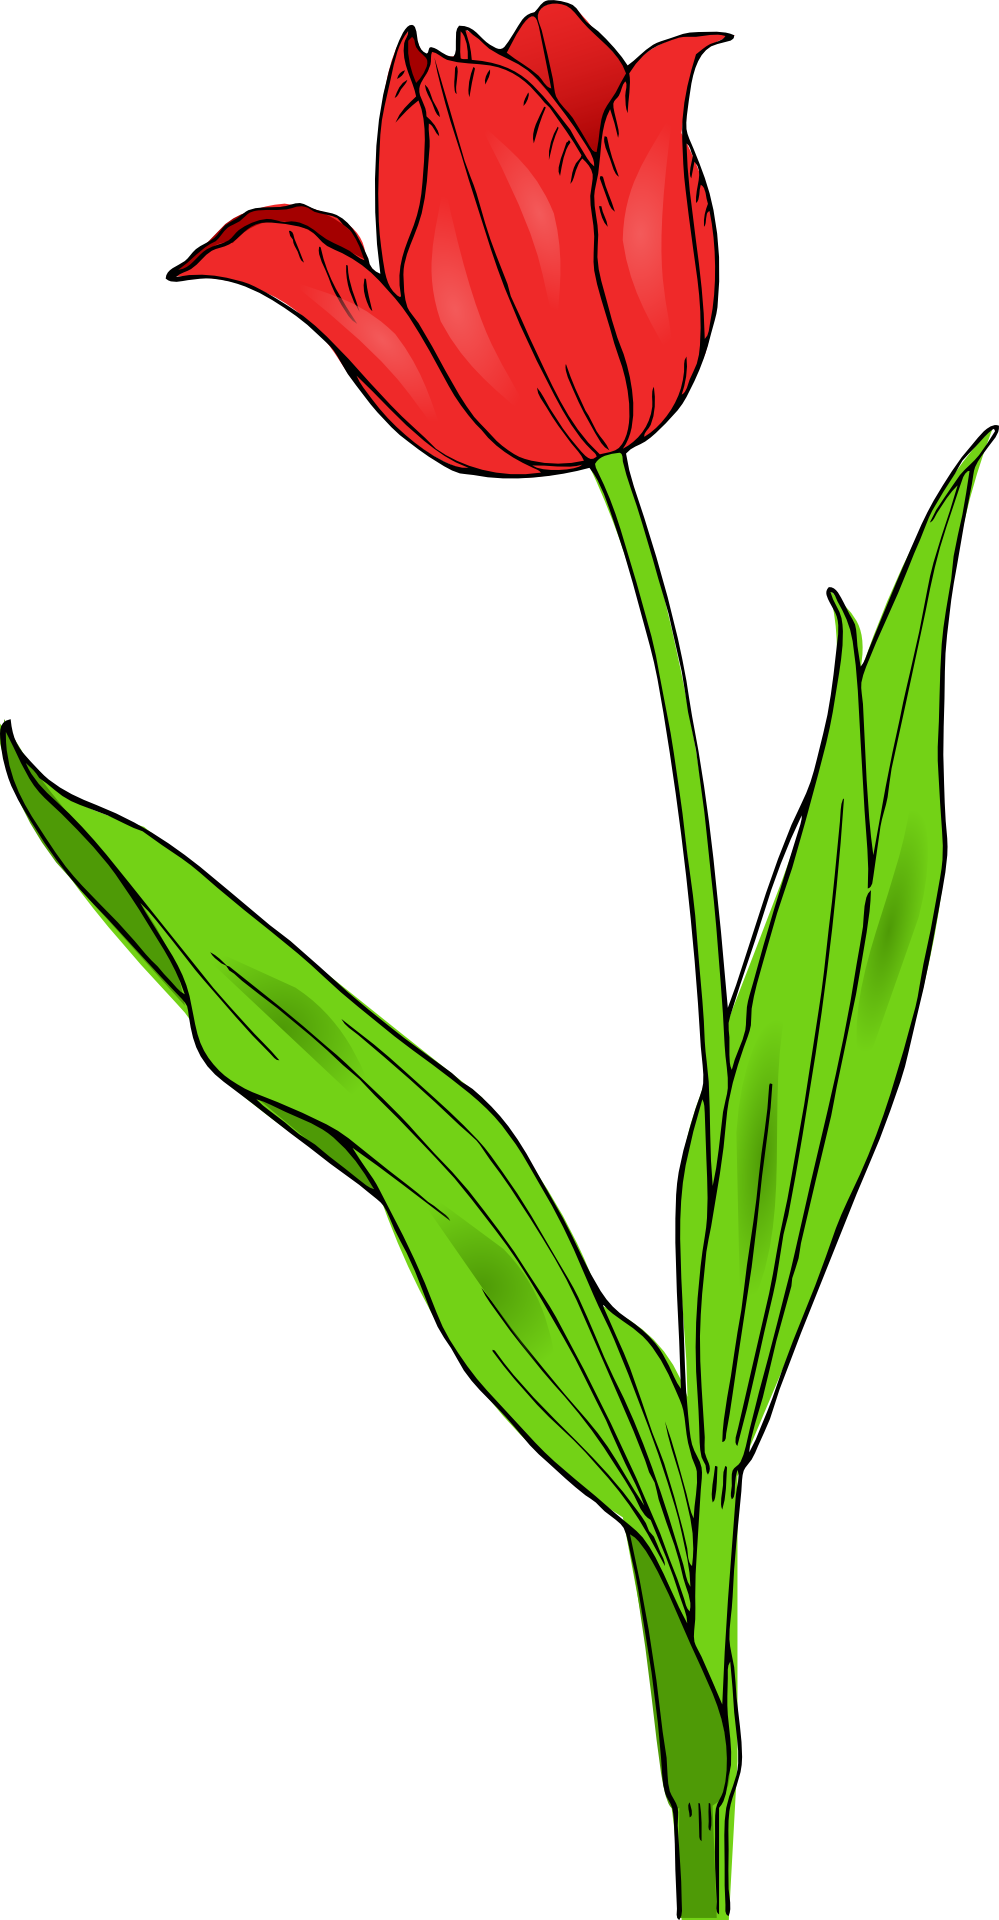 Flower clipart 60 png picture library download tulip flower clip art #1 | 62 Tulip Flower Clipart | Clipart Fans picture library download